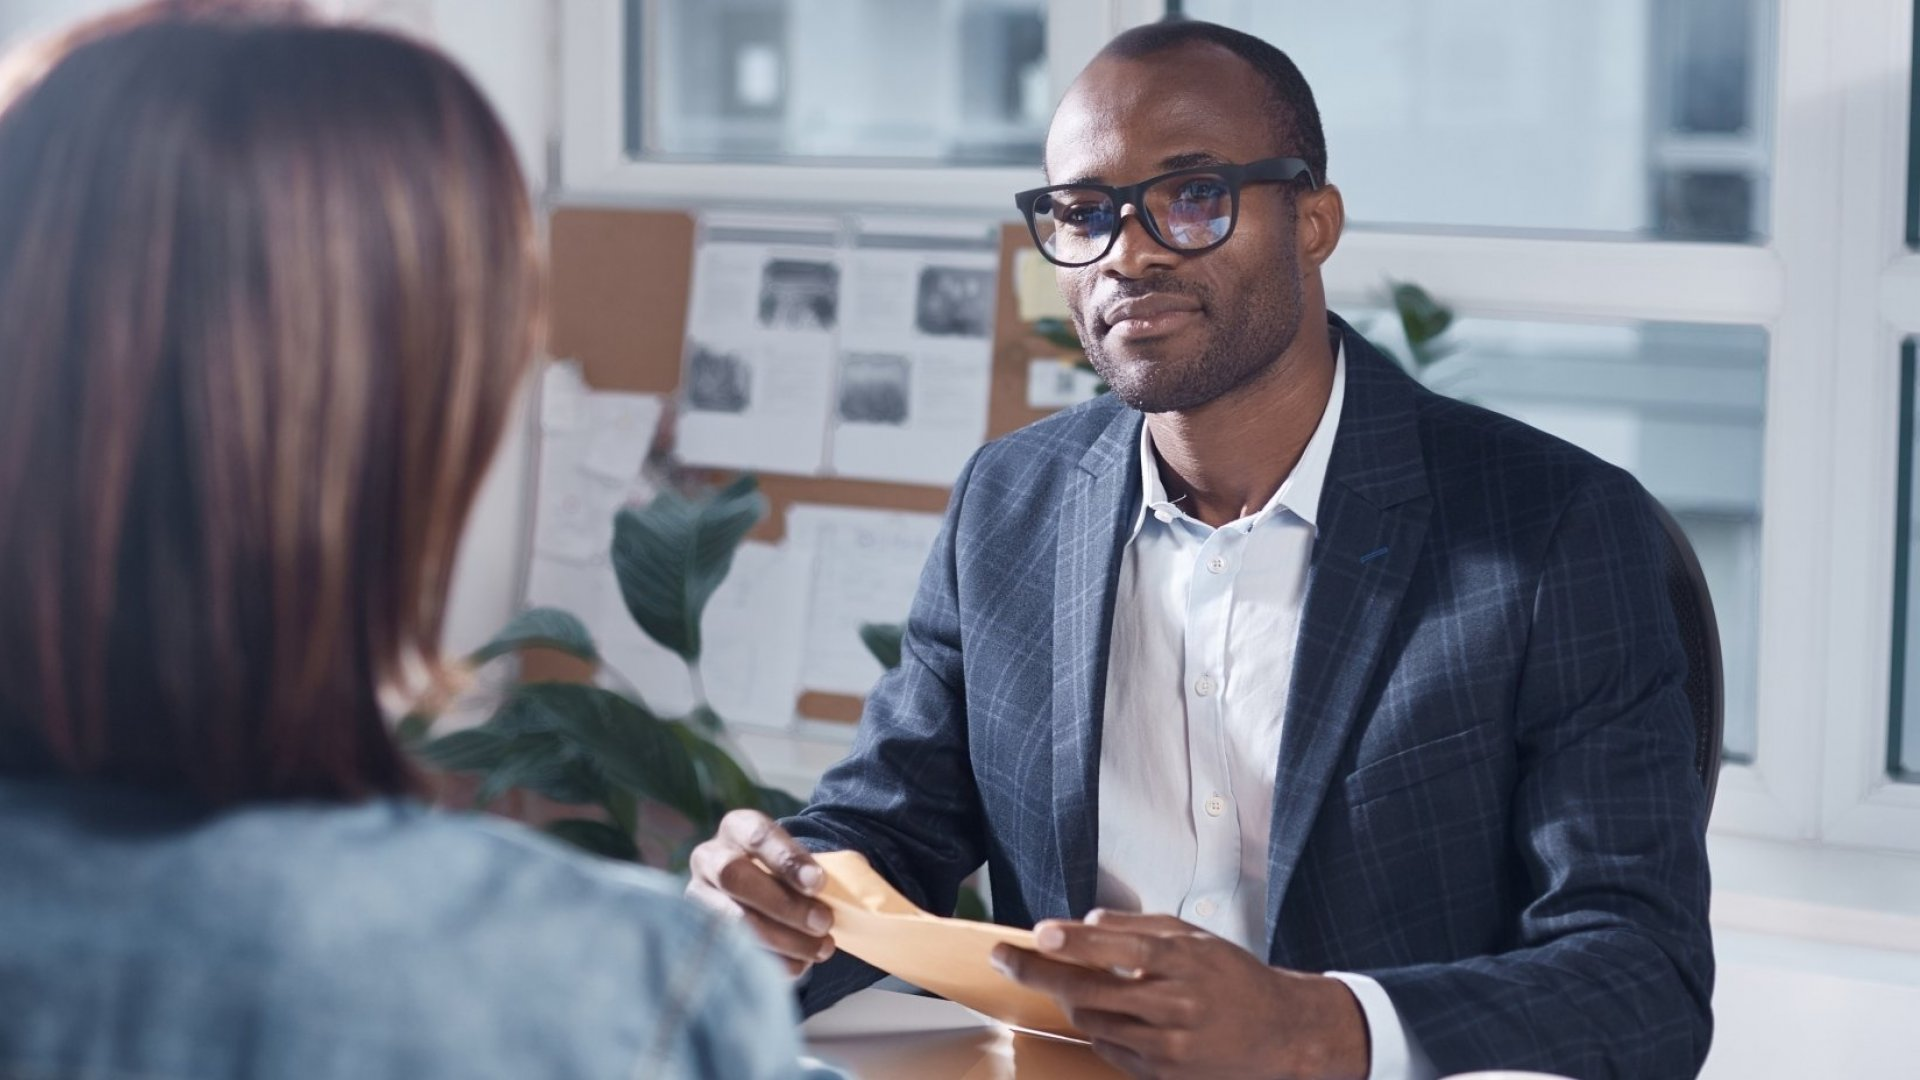 Want a Raise? Here's How to Make Asking Your Boss for a Raise Extraordinarily Easy